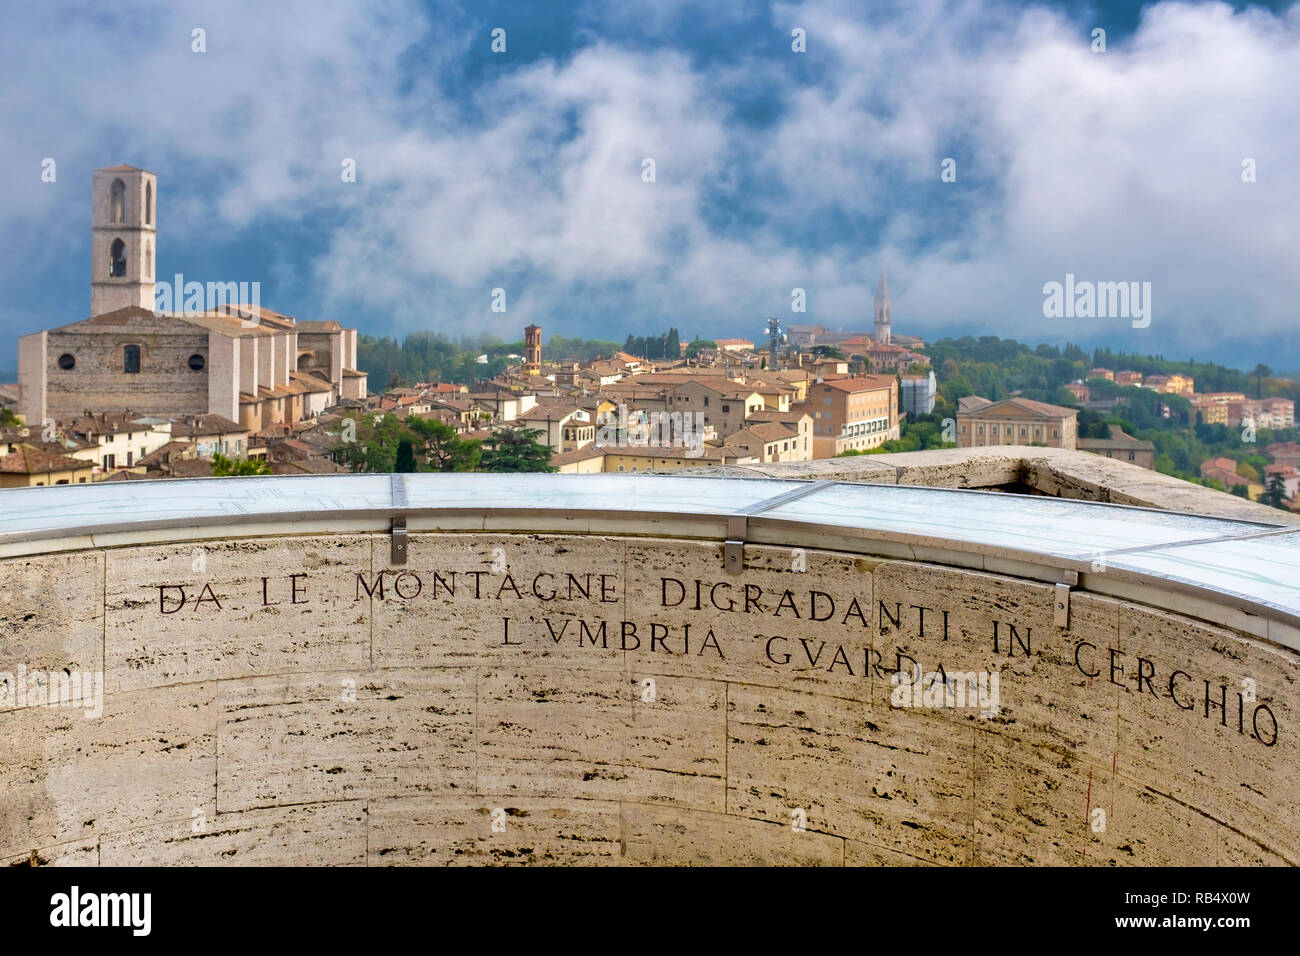 """Basilica of San Domenico seen from the """"L'Umbria Guarda"""" (Umbria watches) viewpoint , Perugia Italy - Stock Image"""